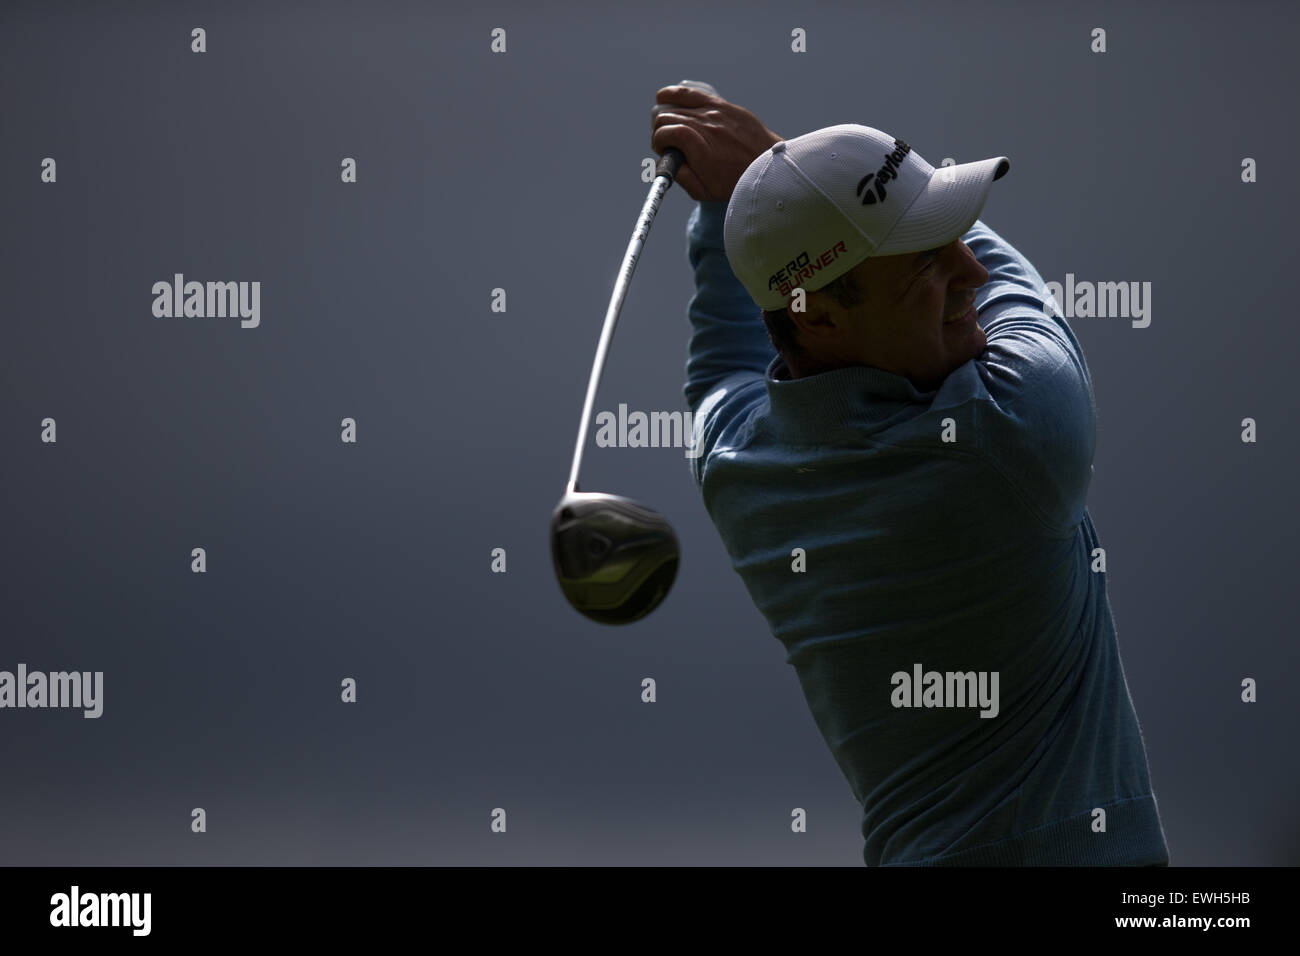 Simon Khan tees off at Wentworth during the BMW PGA Championship Pro-Am on  May 20, 2015. - Stock Image